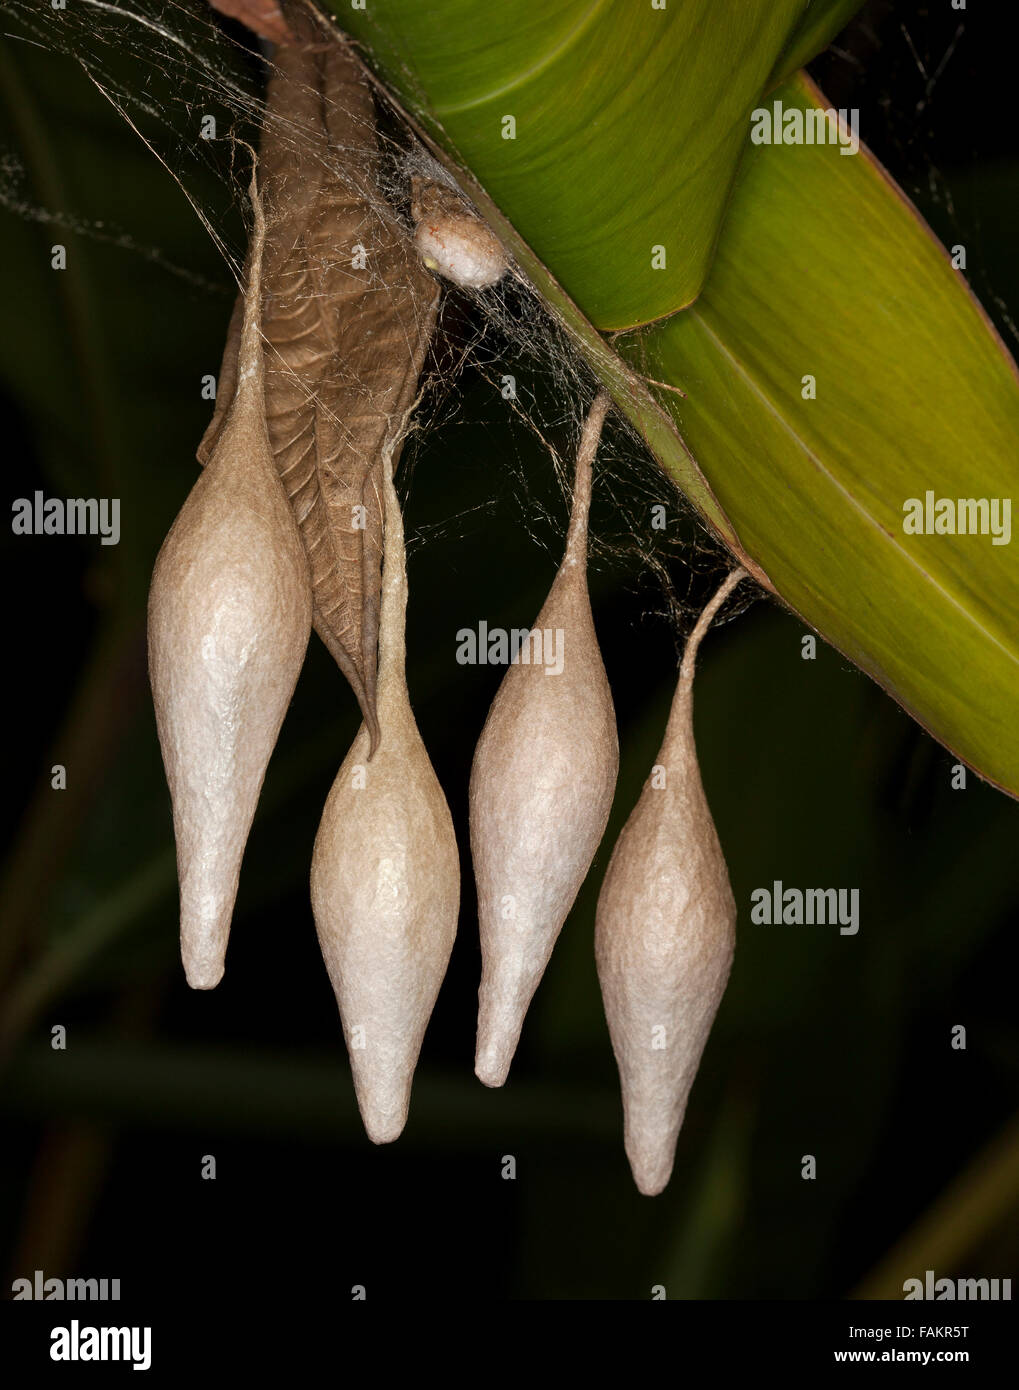 Unusual egg sacs of Ordgarius magnificus, Australian magnificent bolas spider, hanging from green leaf of plant - Stock Image